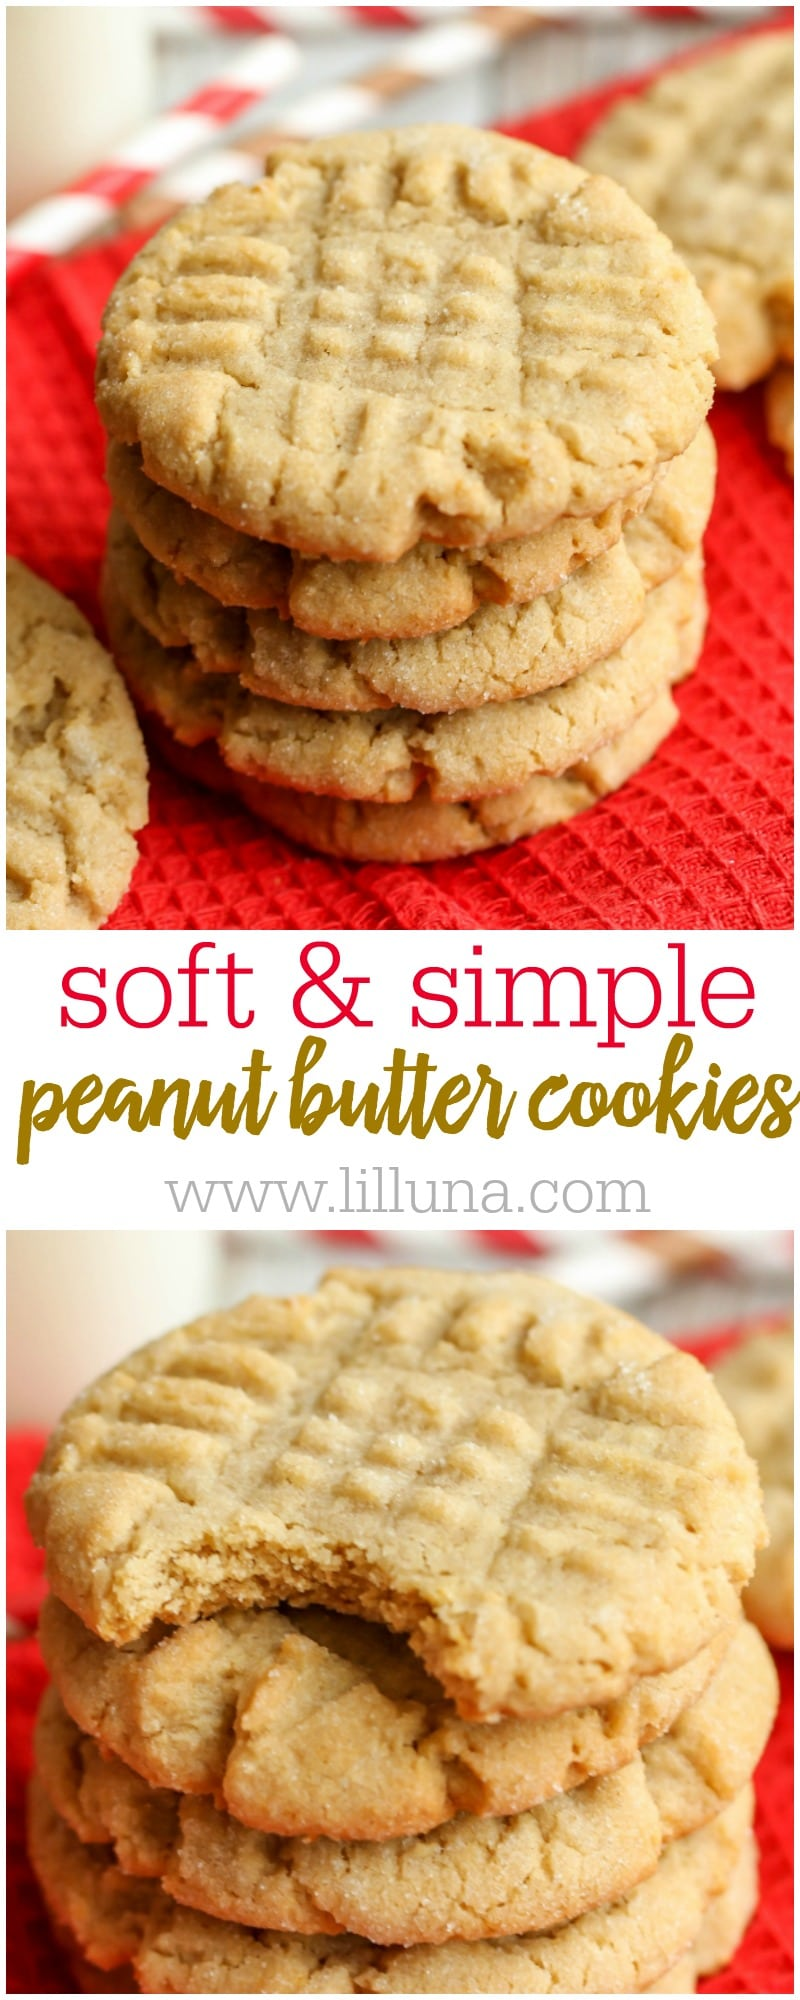 SOFT, delicious and EASY Peanut Butter Cookies recipe - our family's all-time favorite version of this classic cookie that always gets rave reviews!